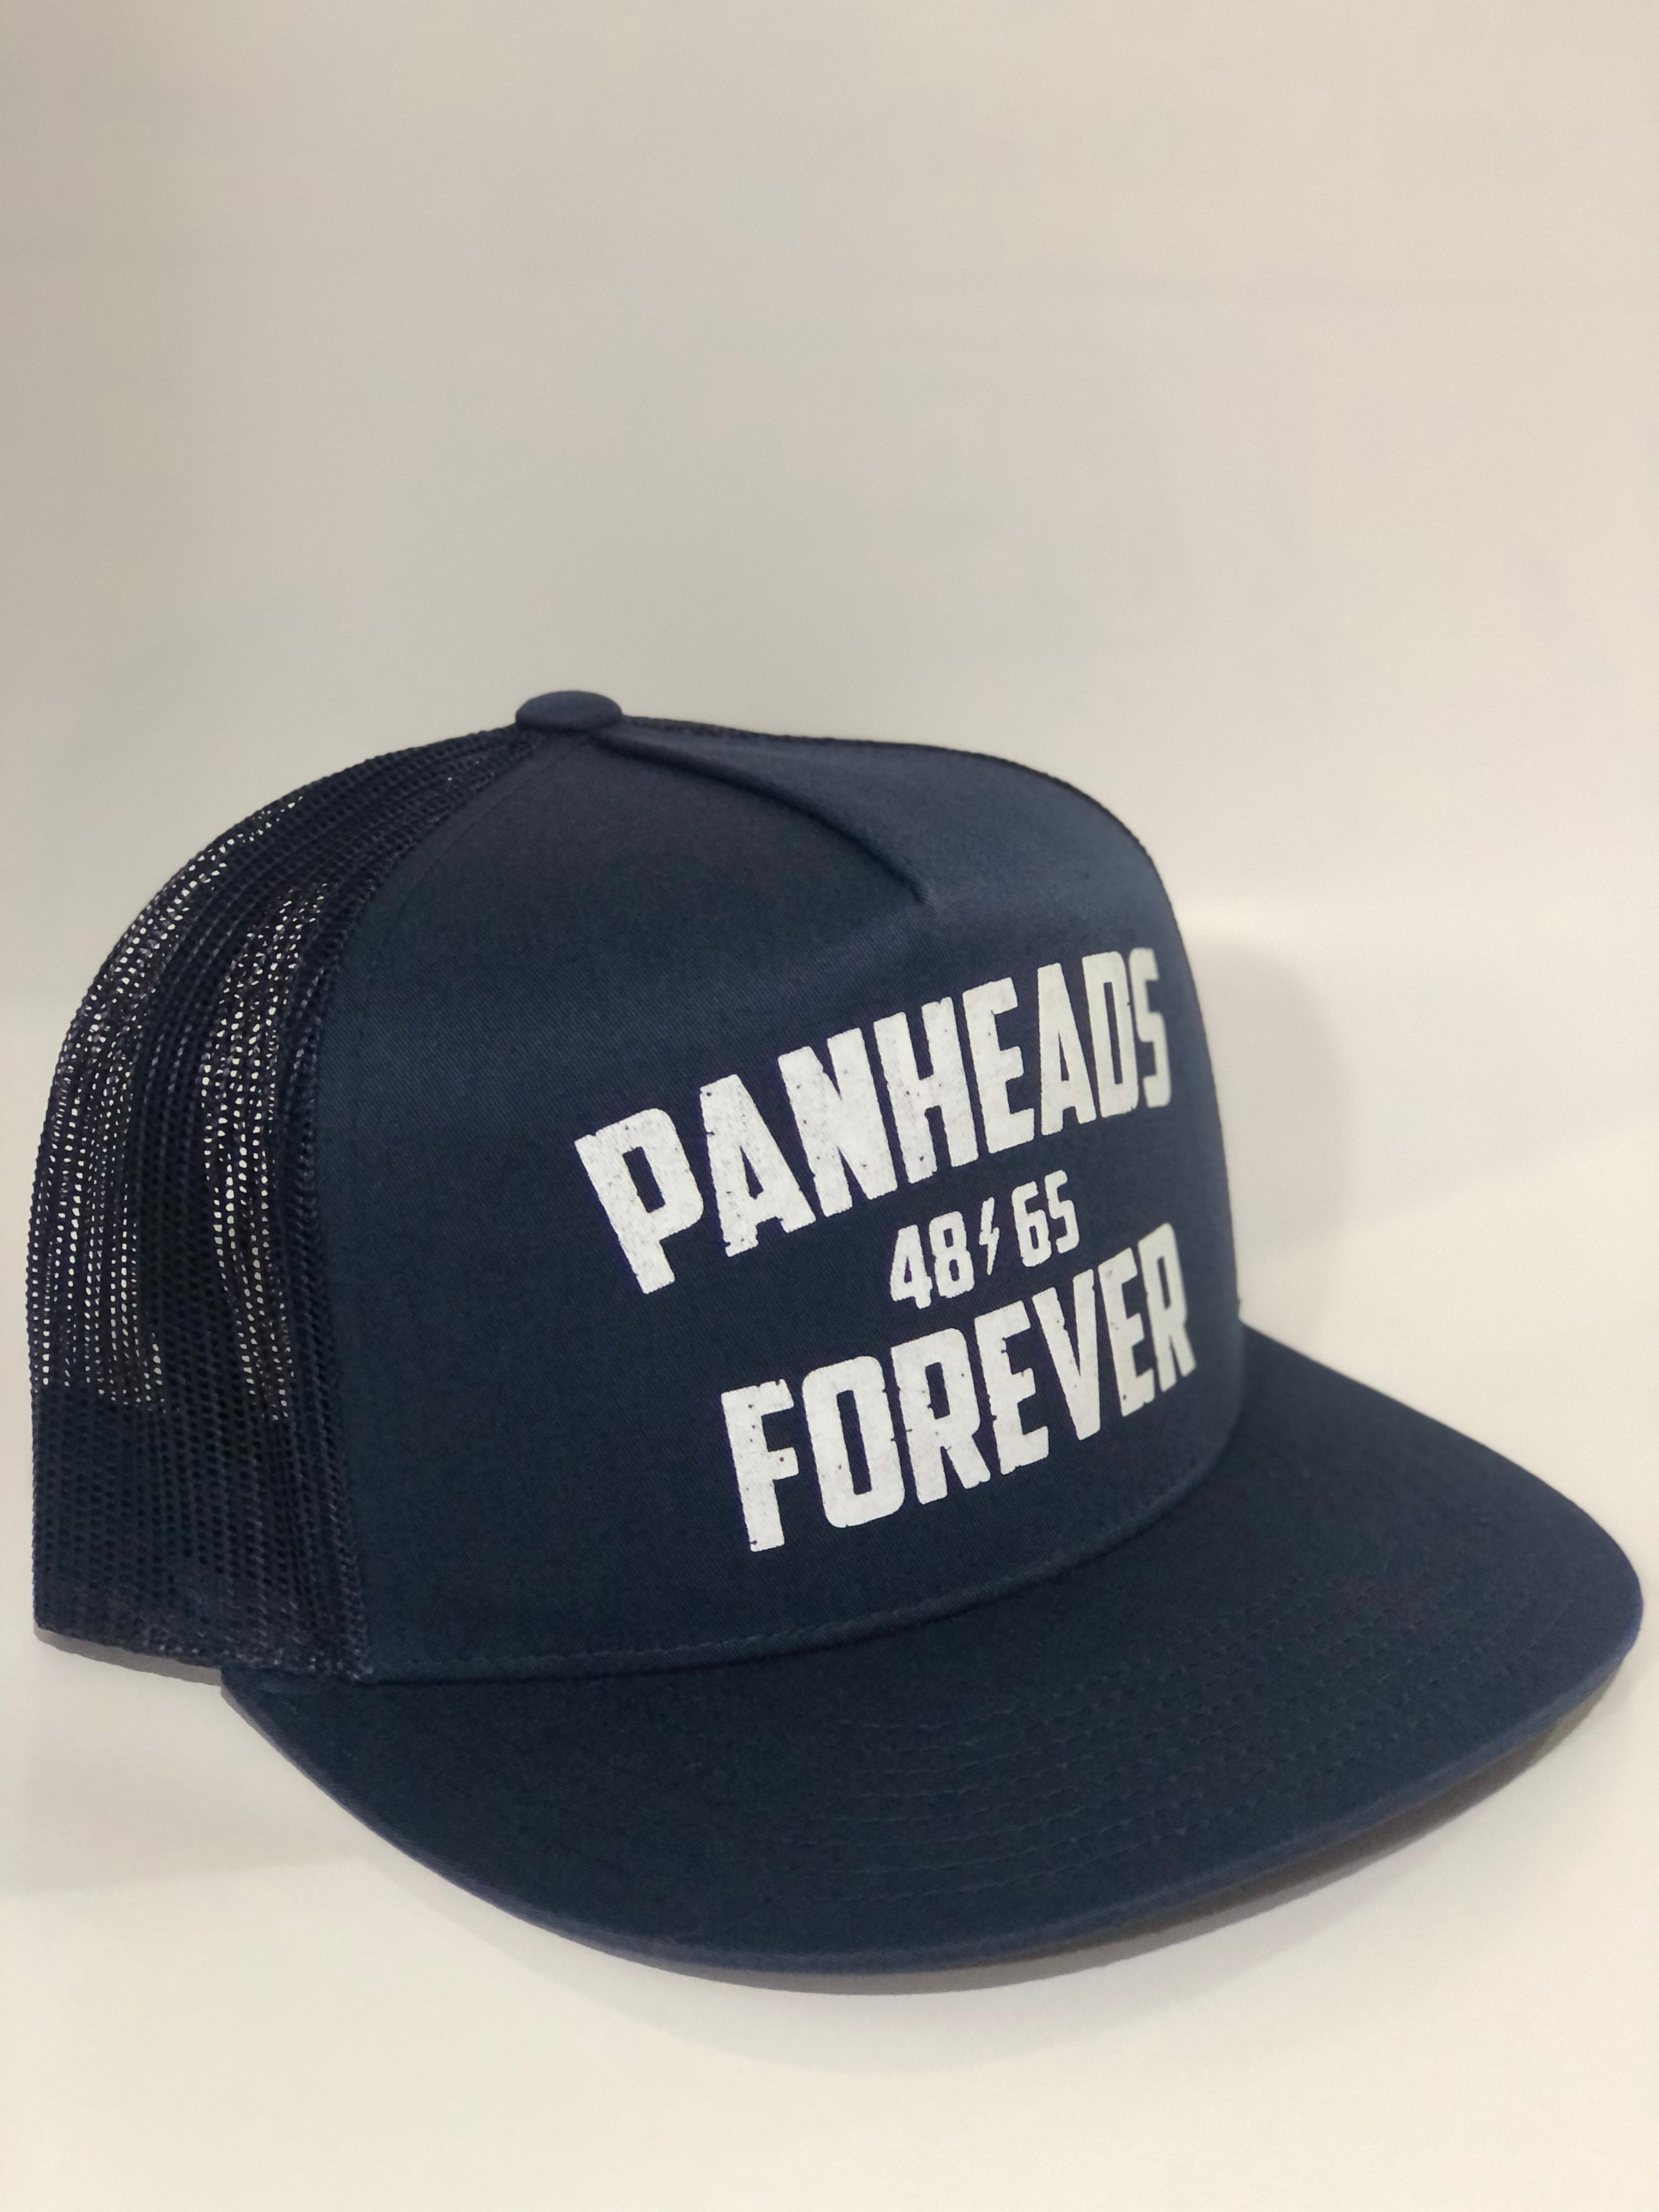 Panheads Forever 5-Panel Snap Back / NAVY BLUE